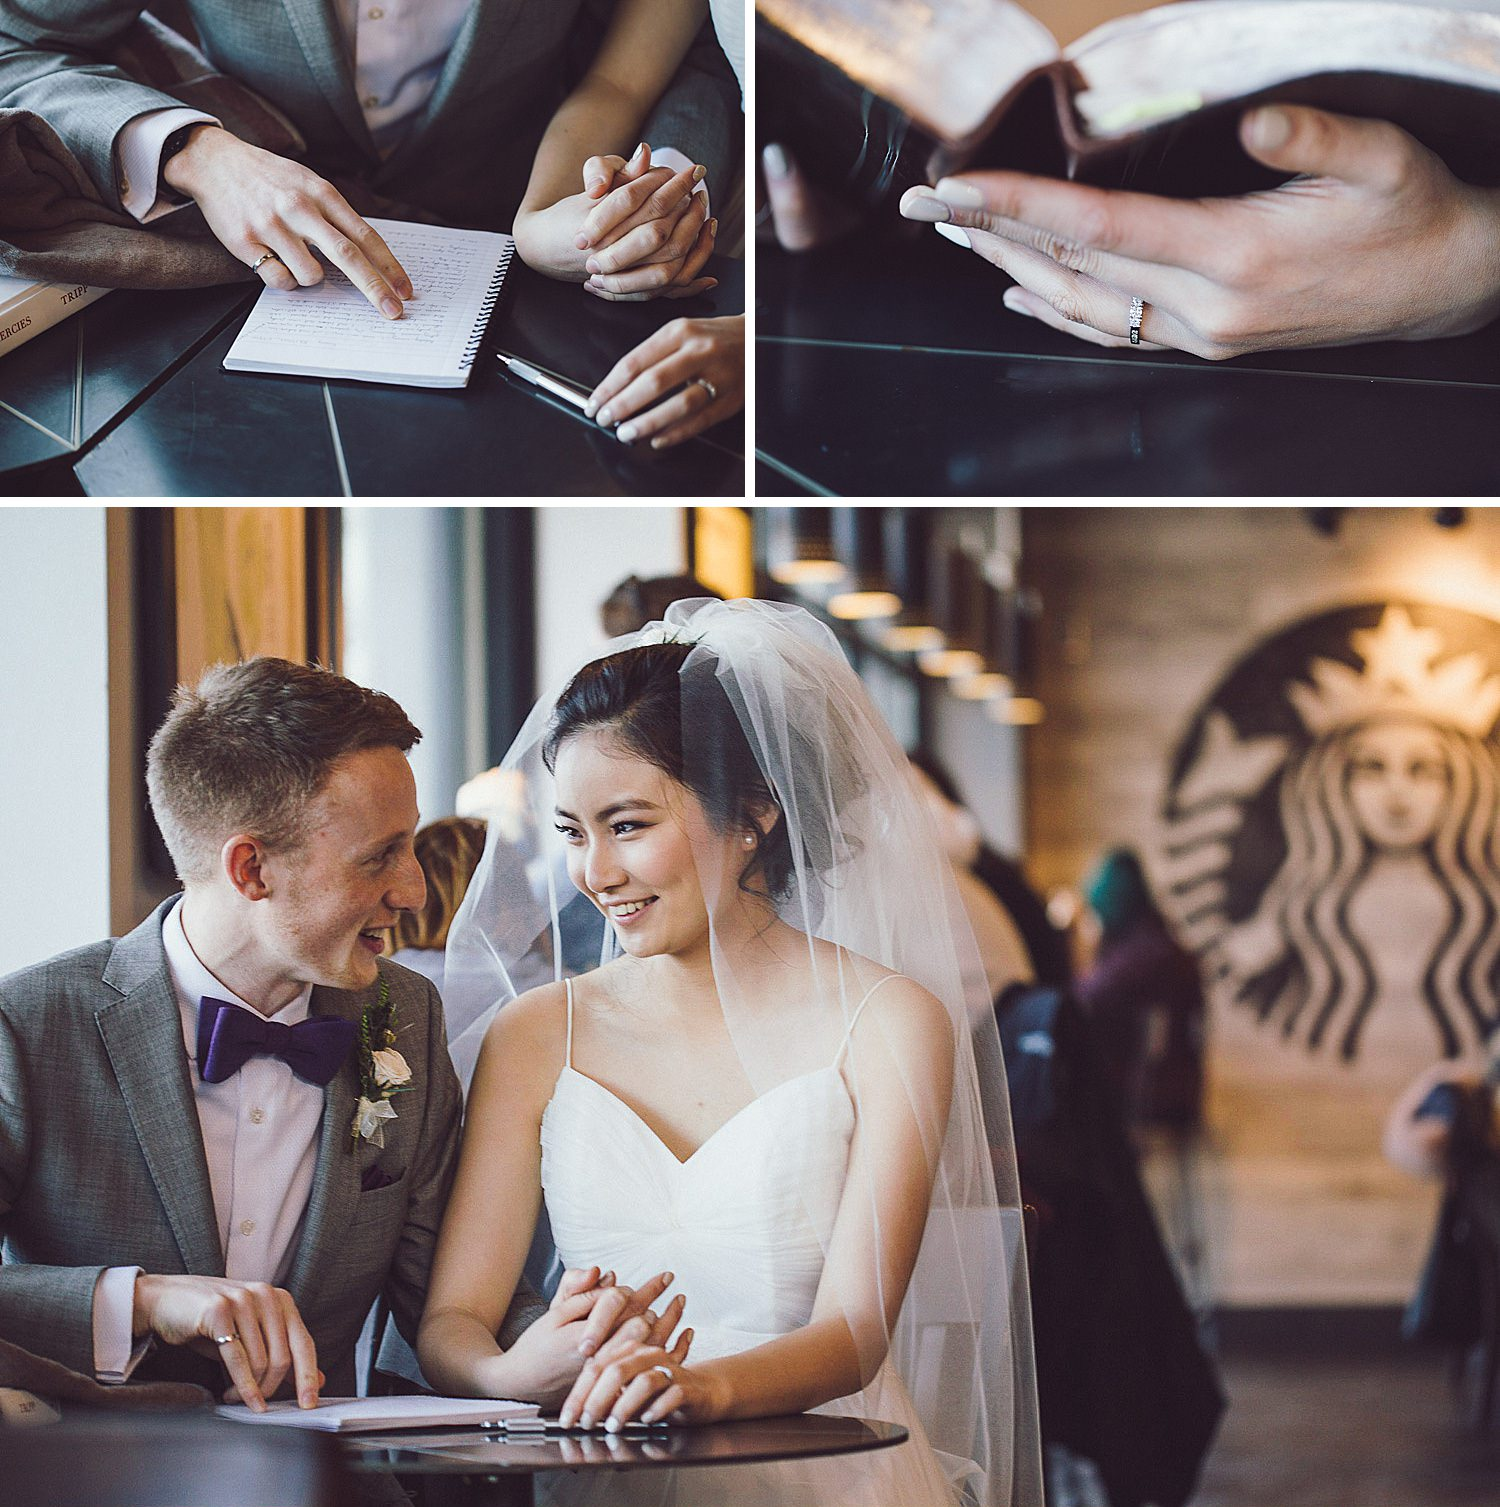 Bride and Groom enjoy time together in Starbucks